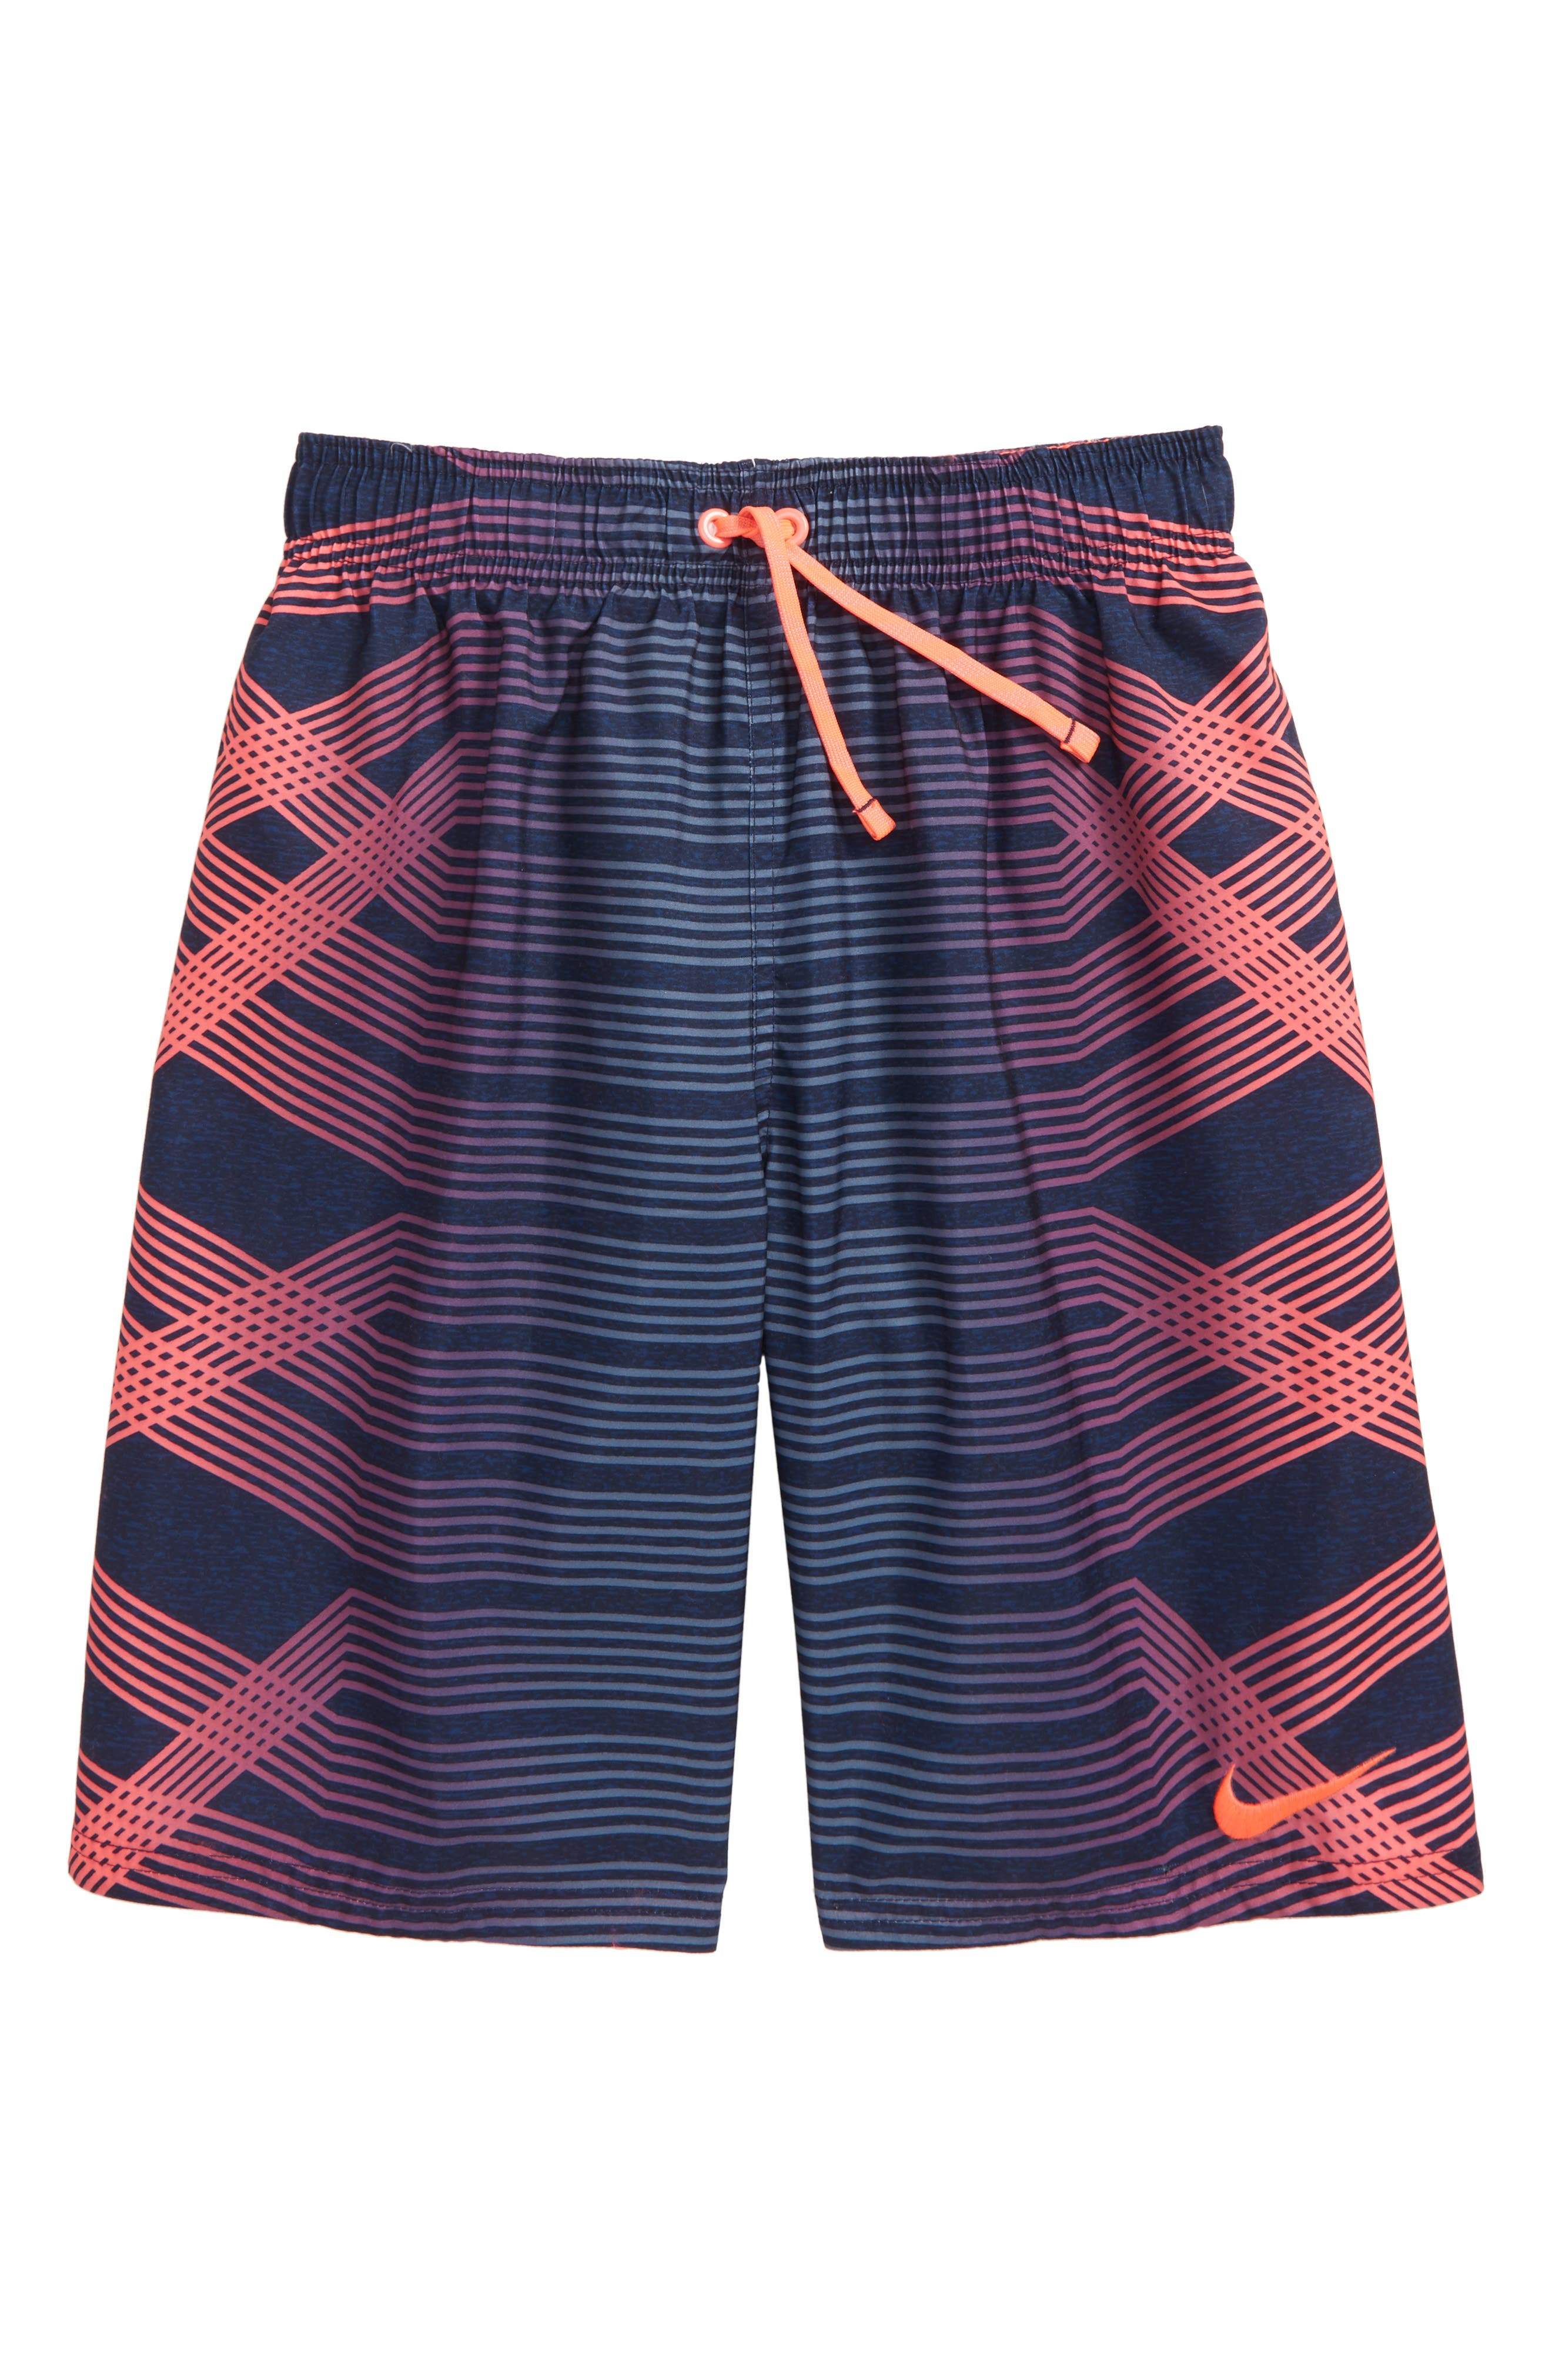 Breaker Volley Shorts,                         Main,                         color, Hot Punch